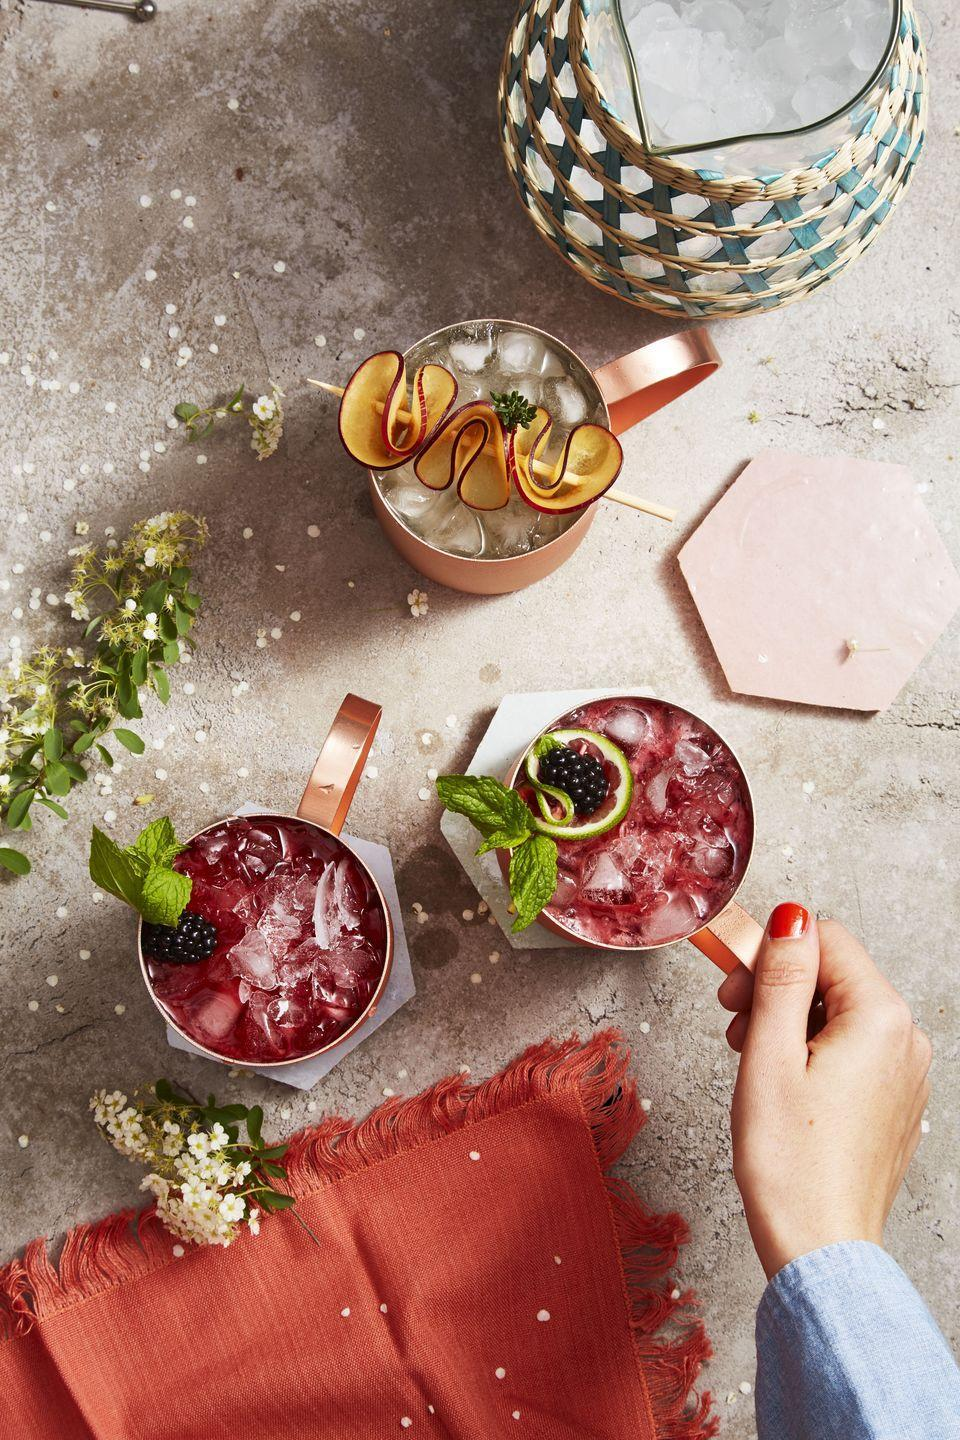 <p>That's right, your favorite drink just got better. Stir together vodka, lime juice, sliced plums and sprigs of fresh thyme in a pitcher. Gently stir in ginger beer before serving over ice. Remember to garnish with more plums and thyme. Cheers! </p>